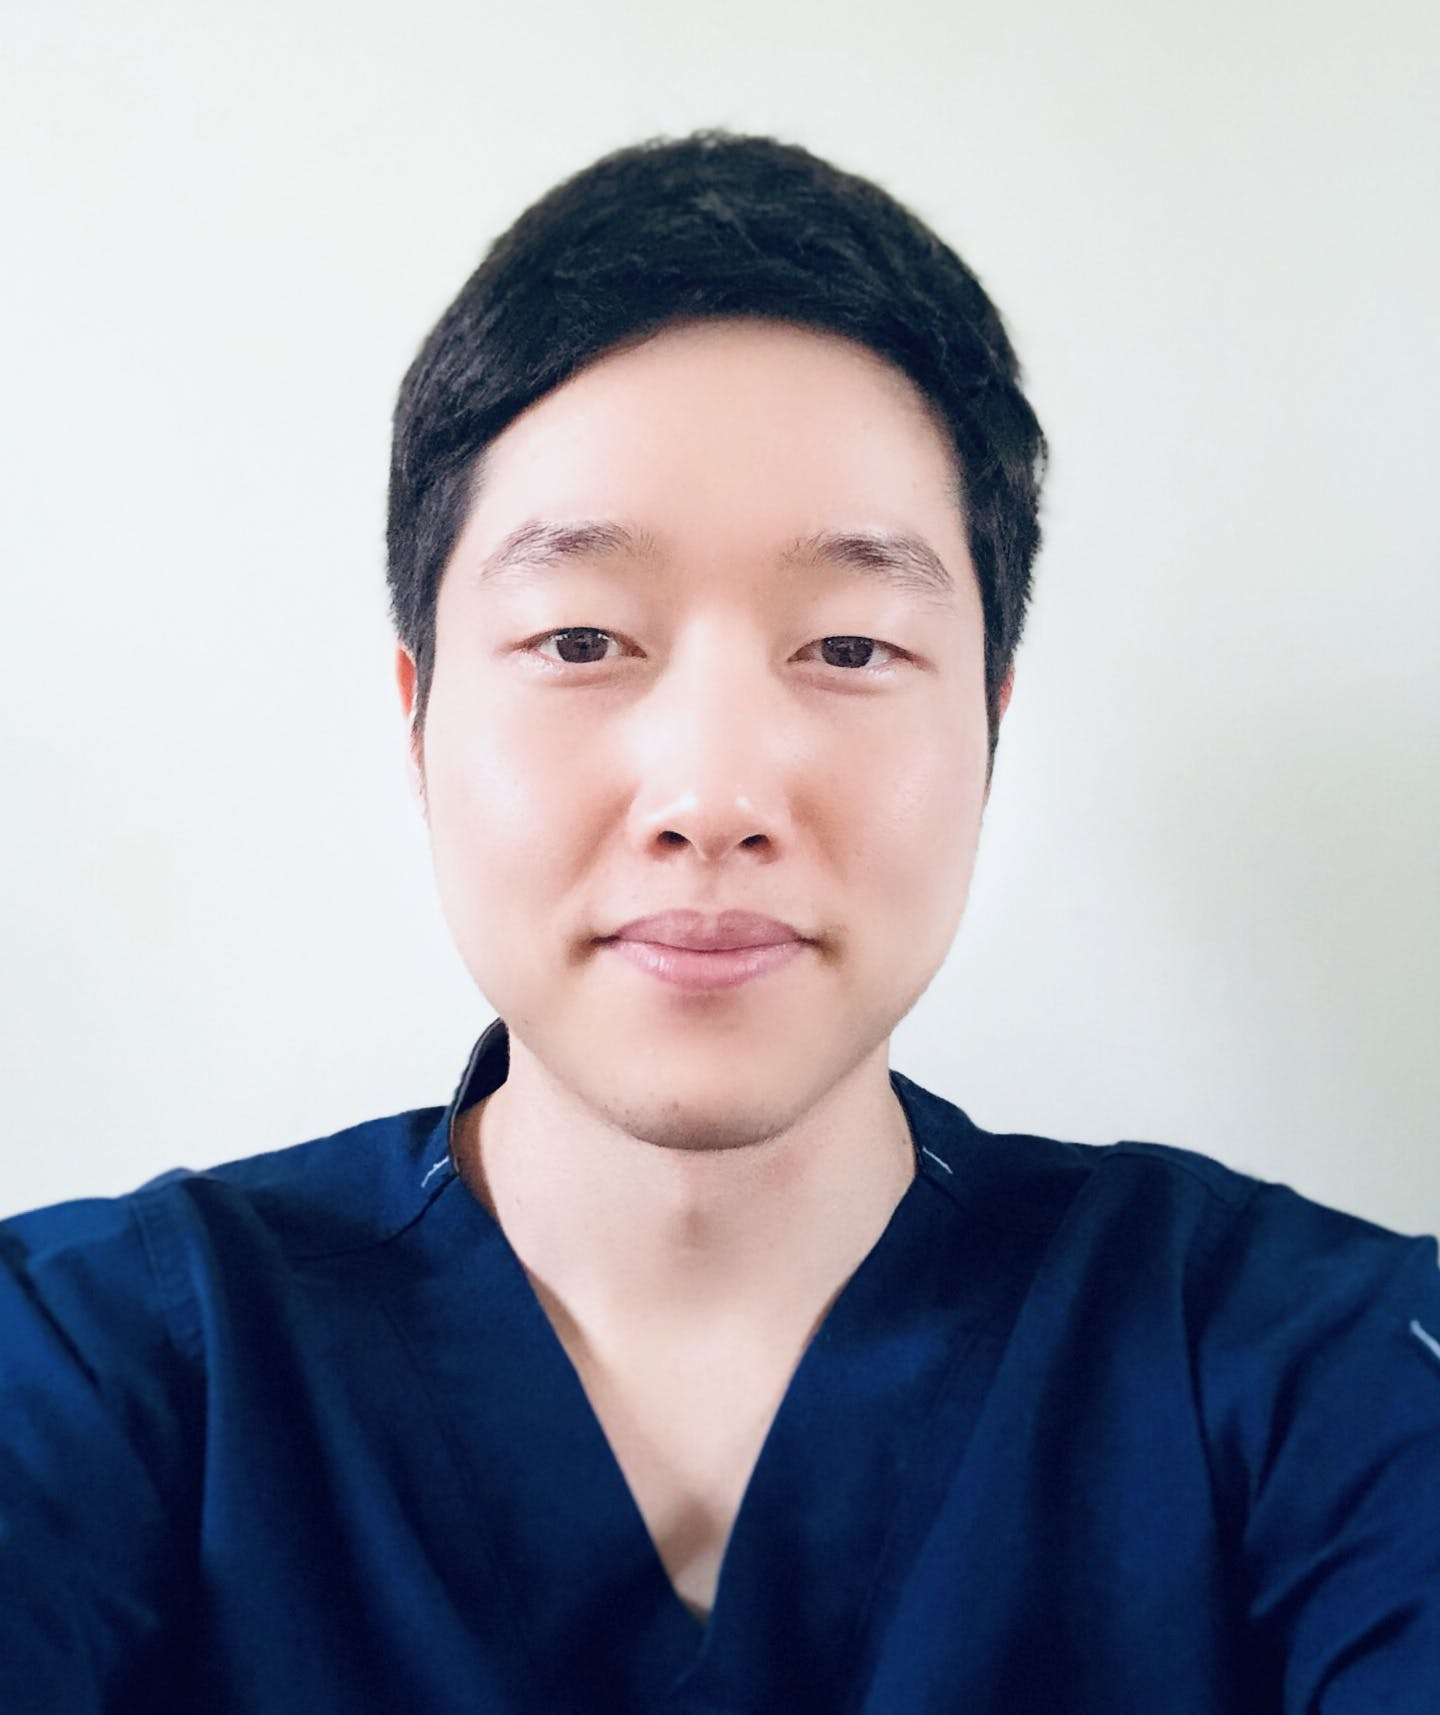 Photo of Dr Soo Yong Park